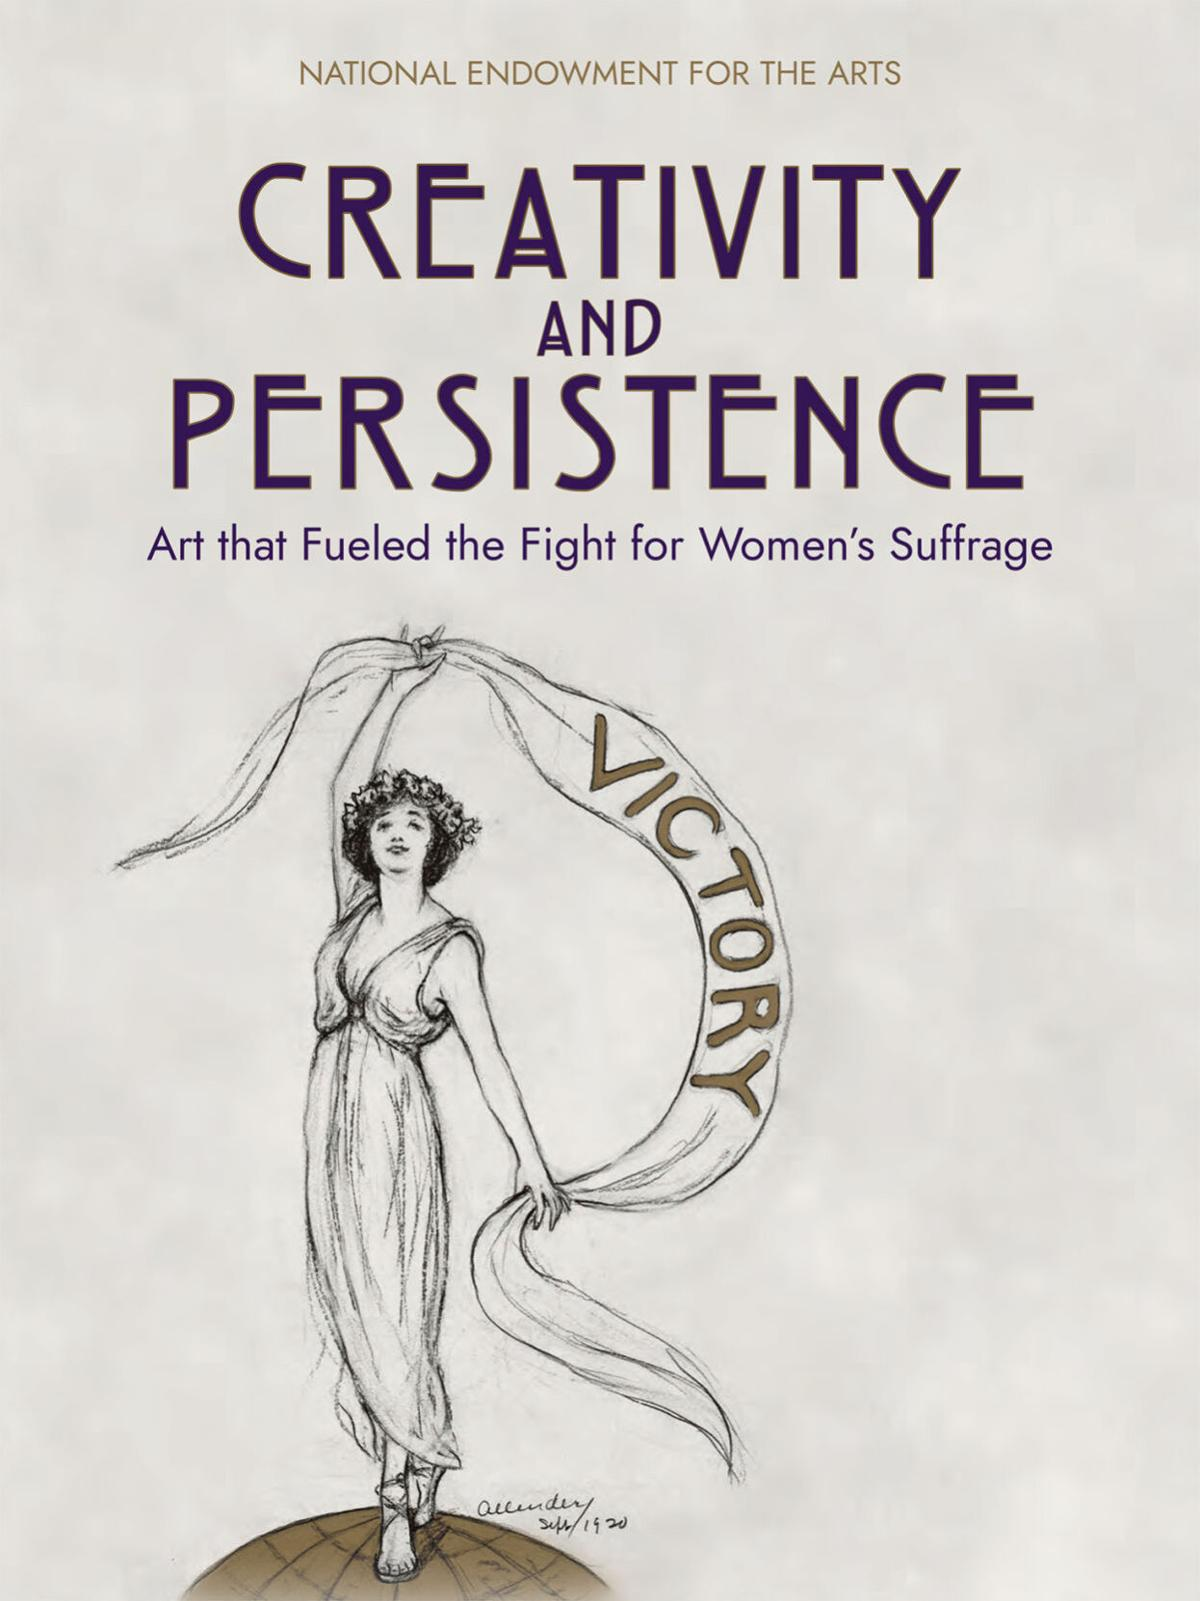 Creativity and Persistence: Art that Fueled the Fight for Women's Suffrage